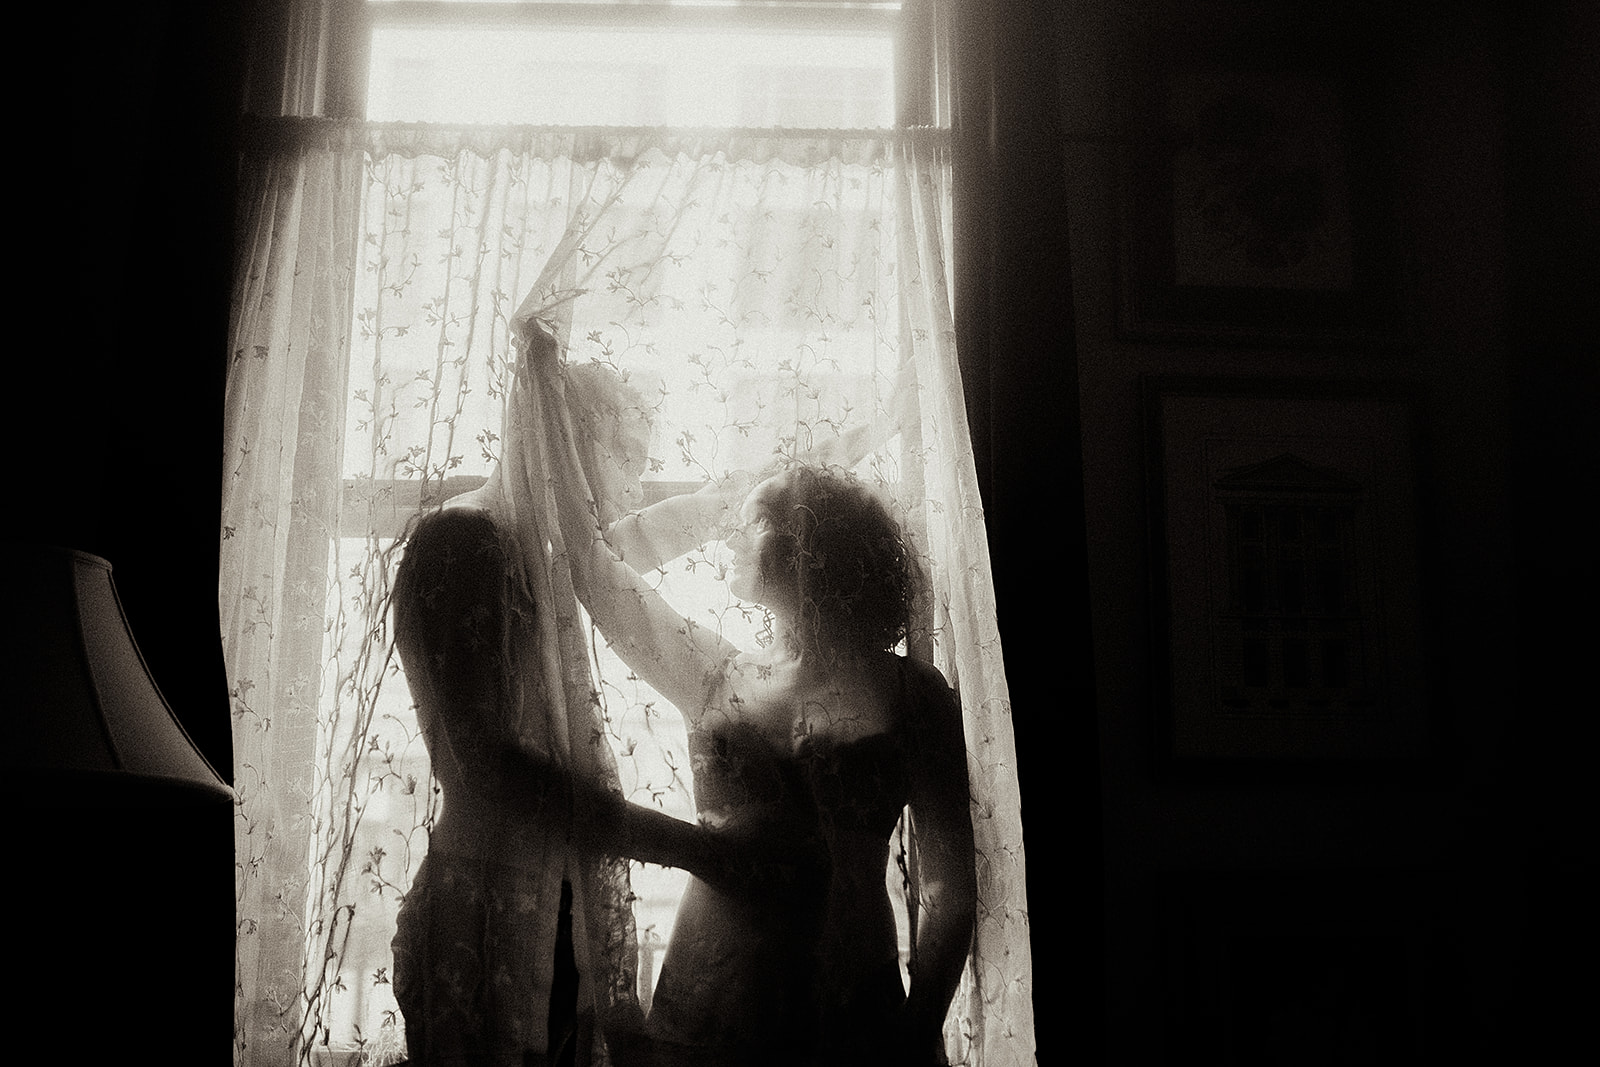 A couple is standing in front of a window and behind curtains.